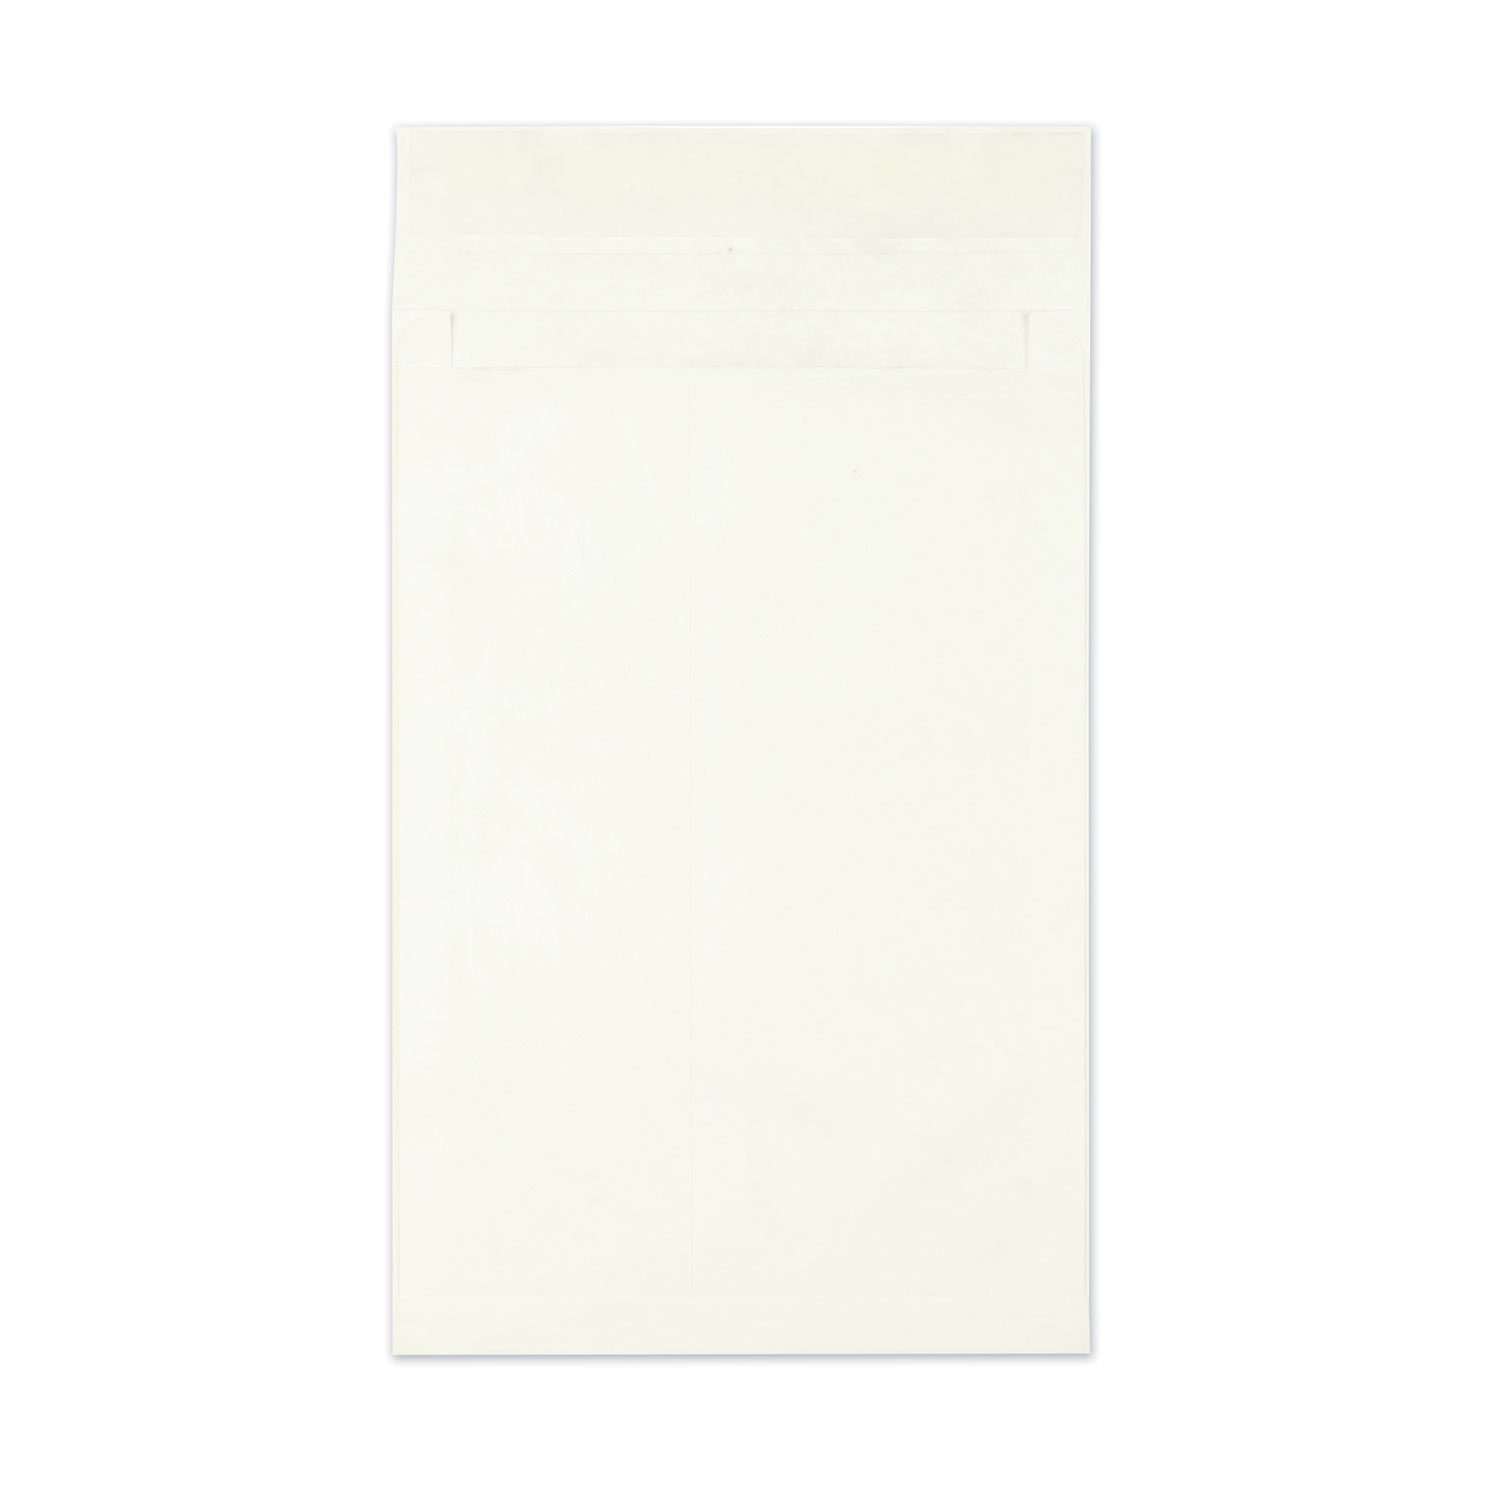 Open End Expansion Mailers, DuPont Tyvek, #15 1/2, Cheese Blade Flap, Redi-Strip Closure, 12 x 16, White, 100/Carton